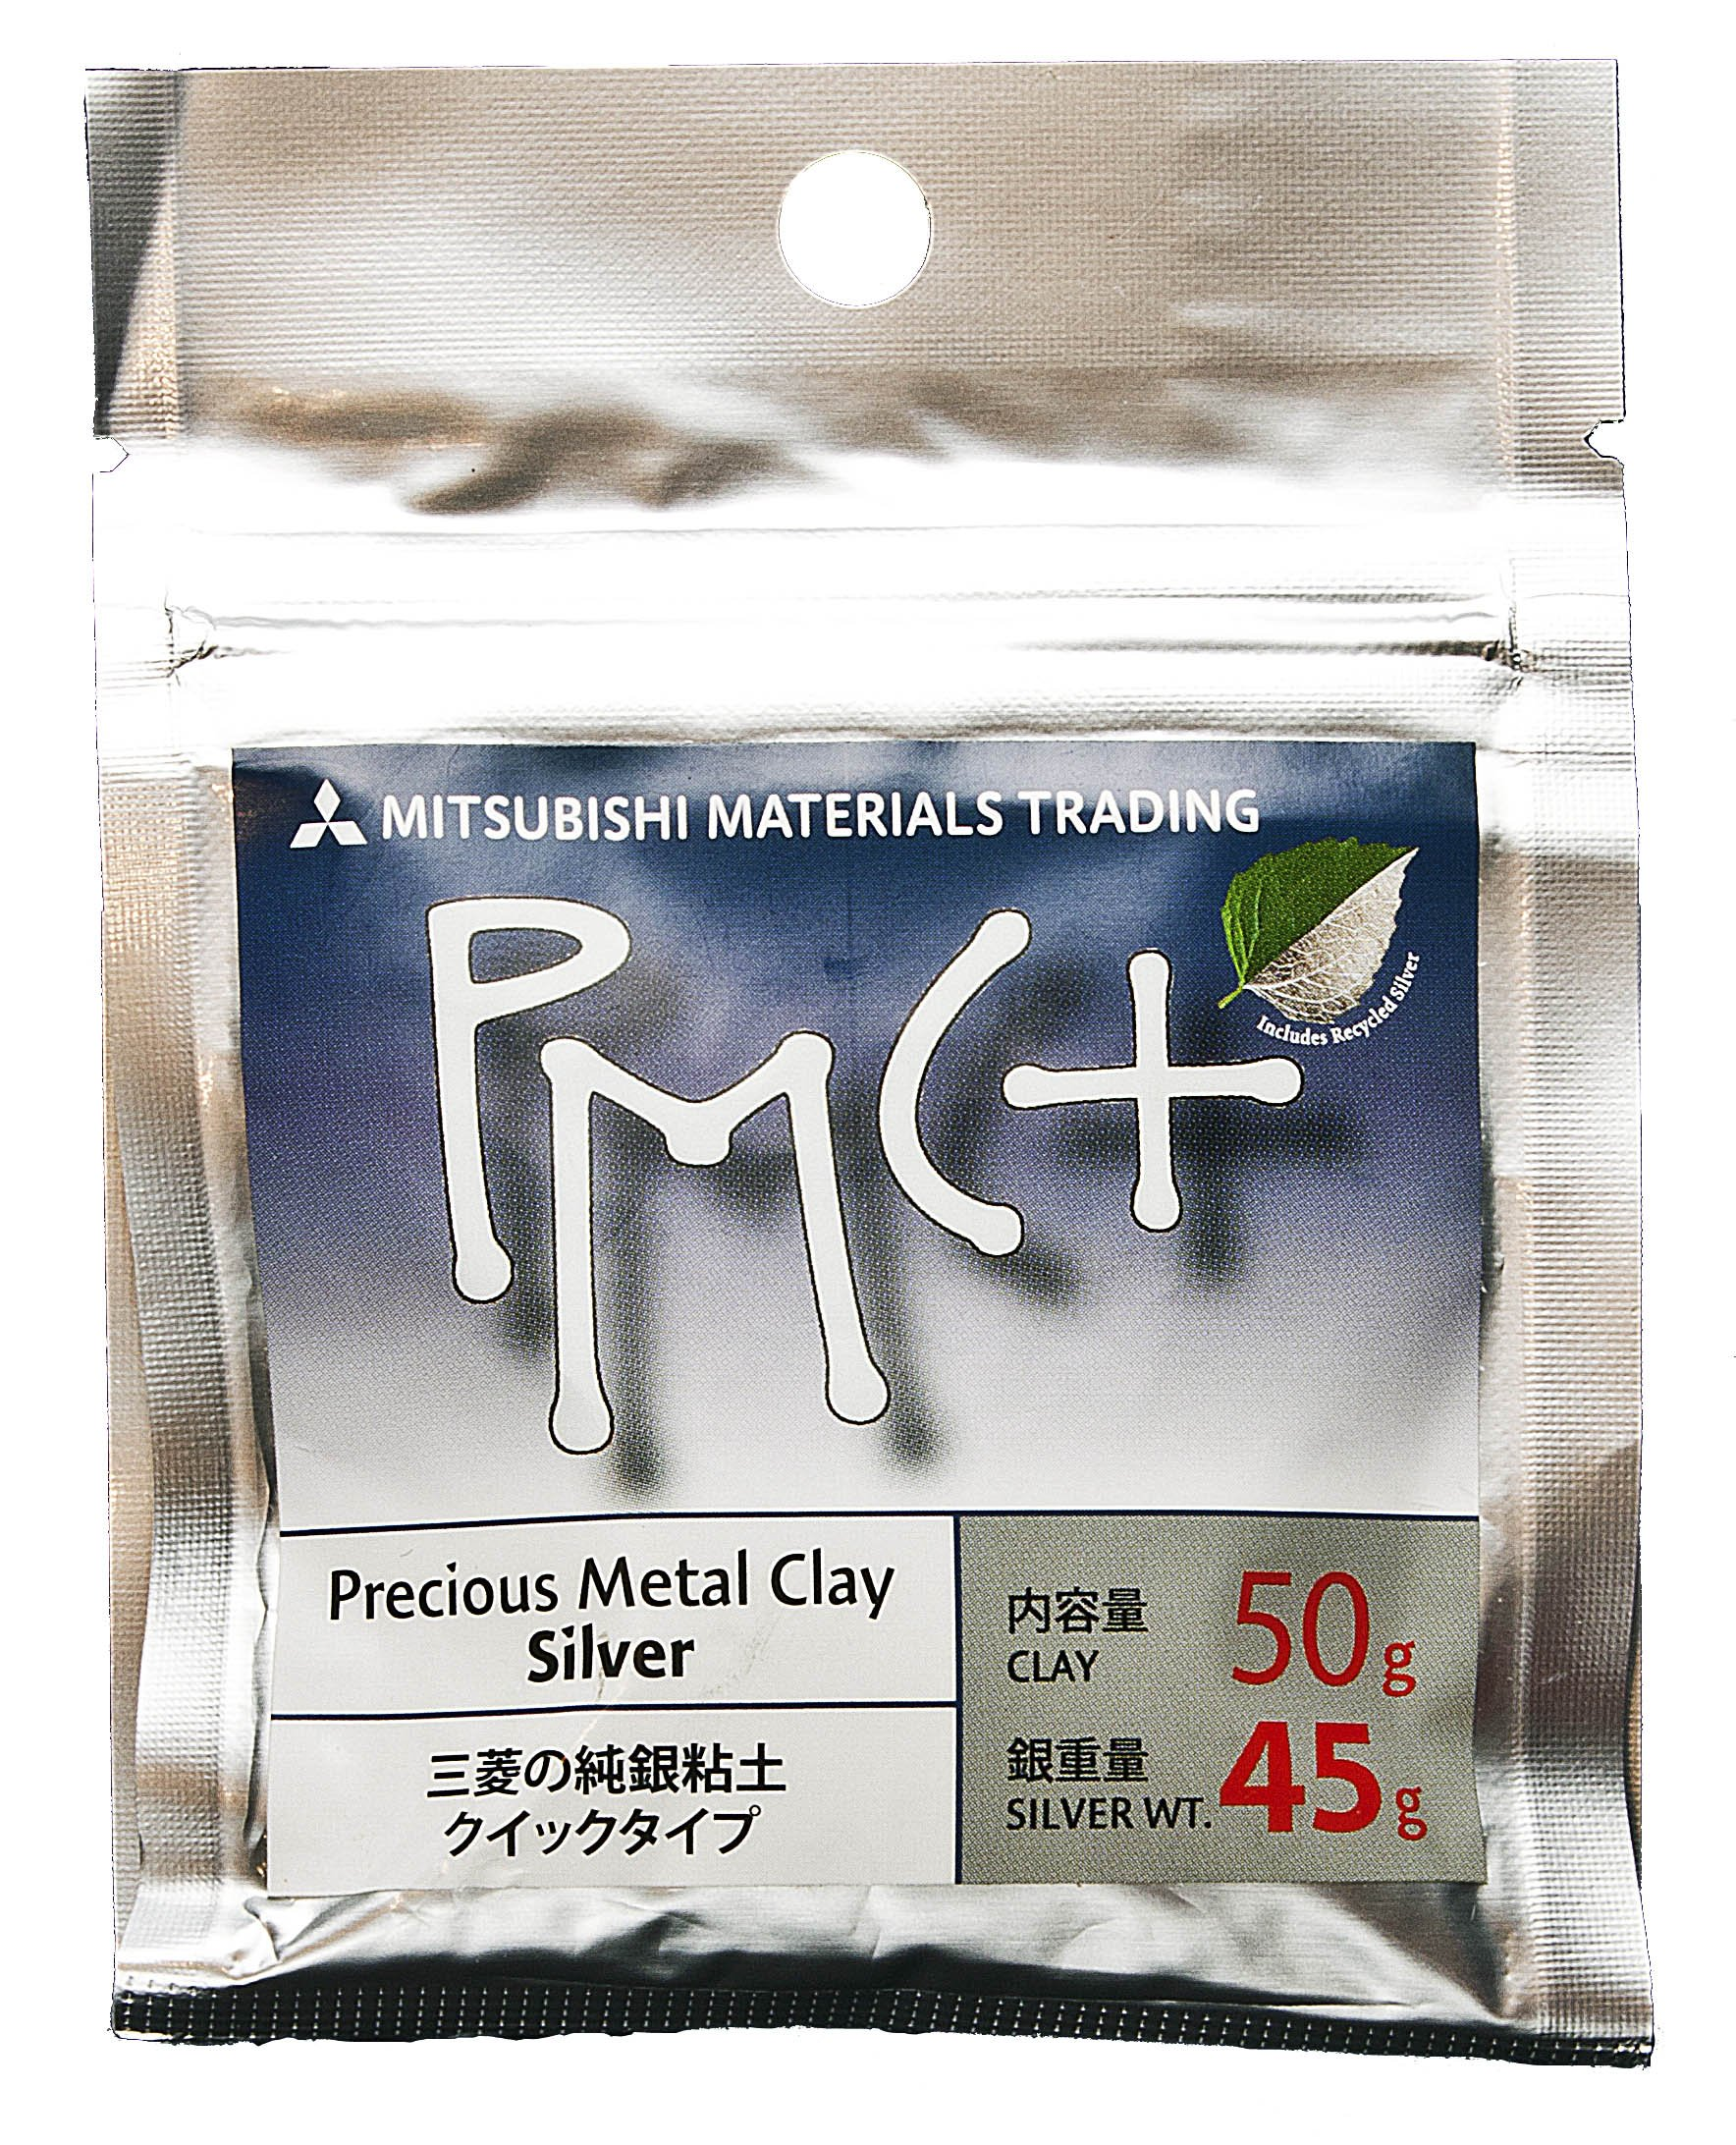 Pmc+ Silver Metal Clay - 45 Grams